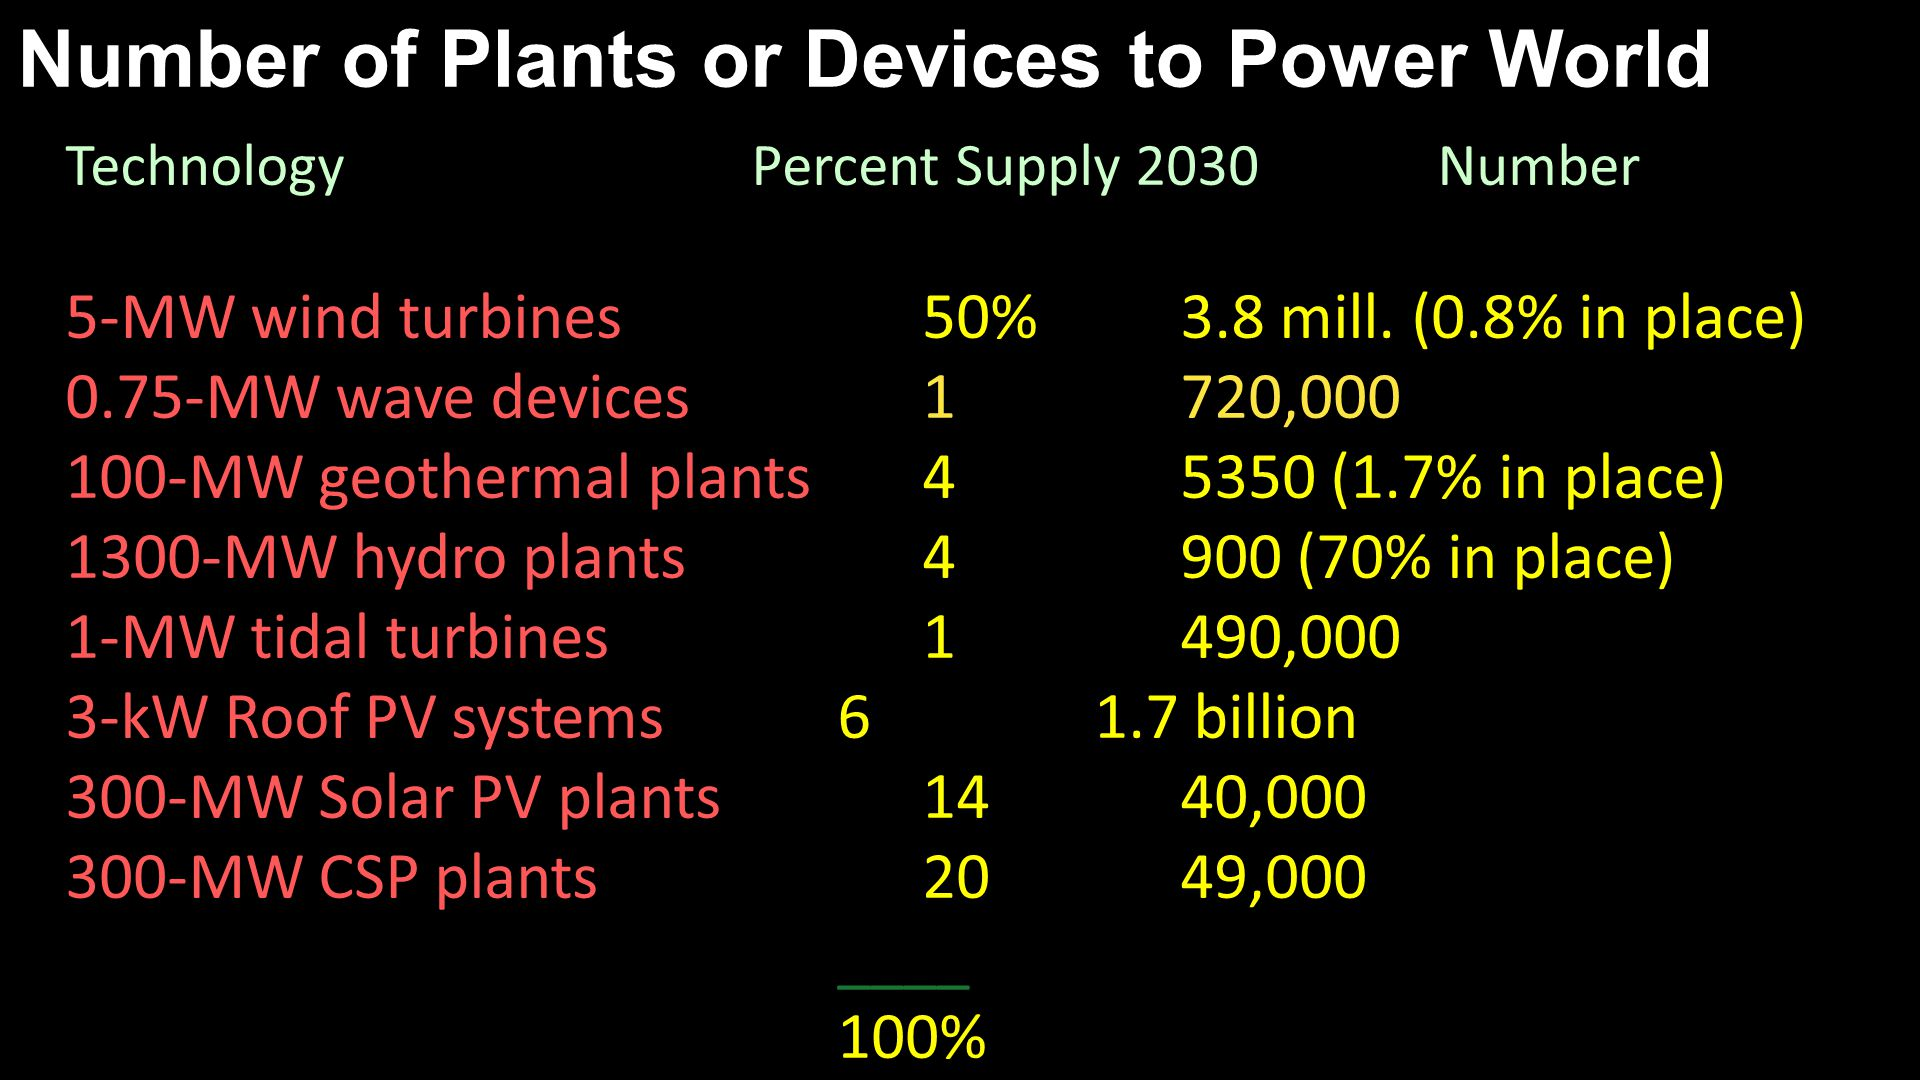 Number of Plants or Devices to Power World TechnologyPercent Supply 2030Number 5-MW wind turbines 50%3.8 mill.